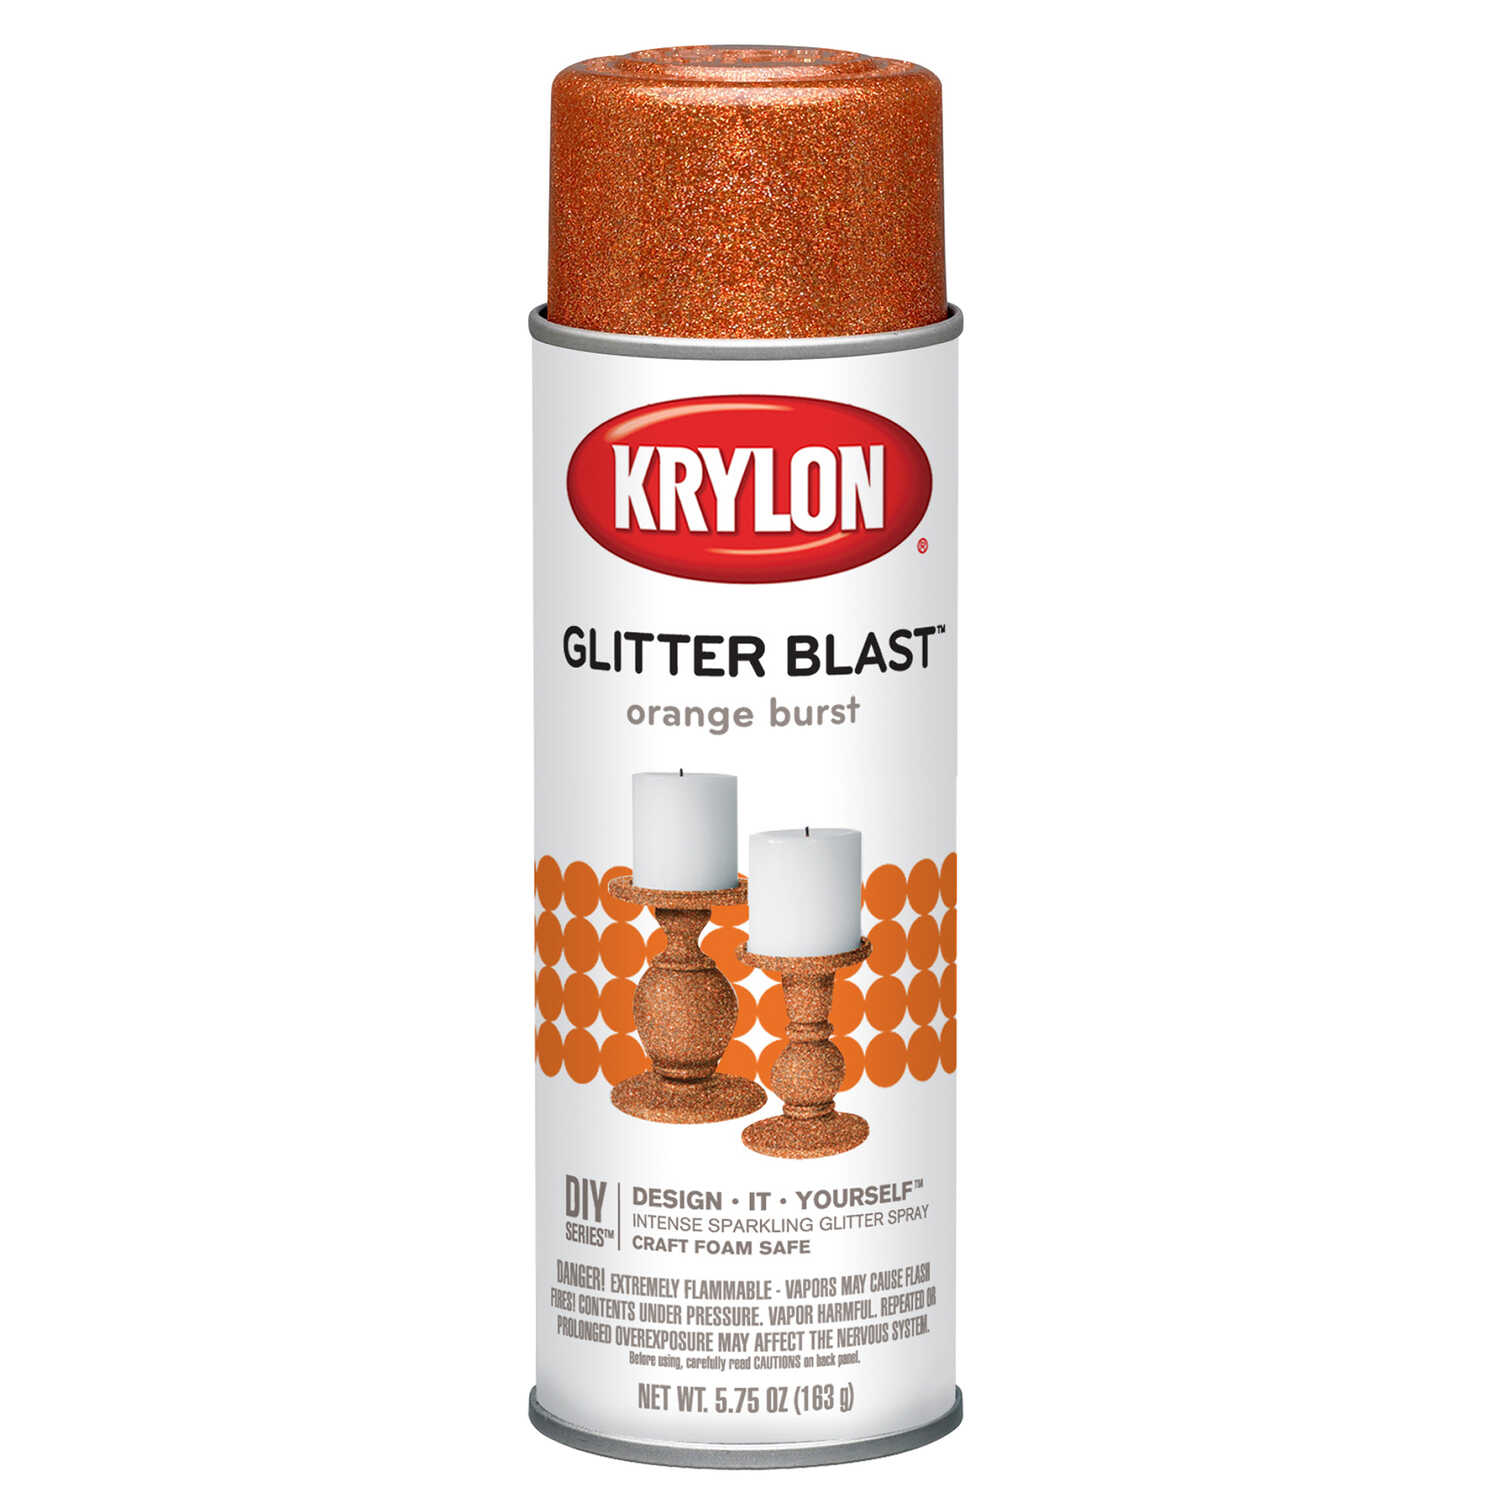 Krylon  Glitter Blast Spray Paint  Orange burst  5.75 oz.